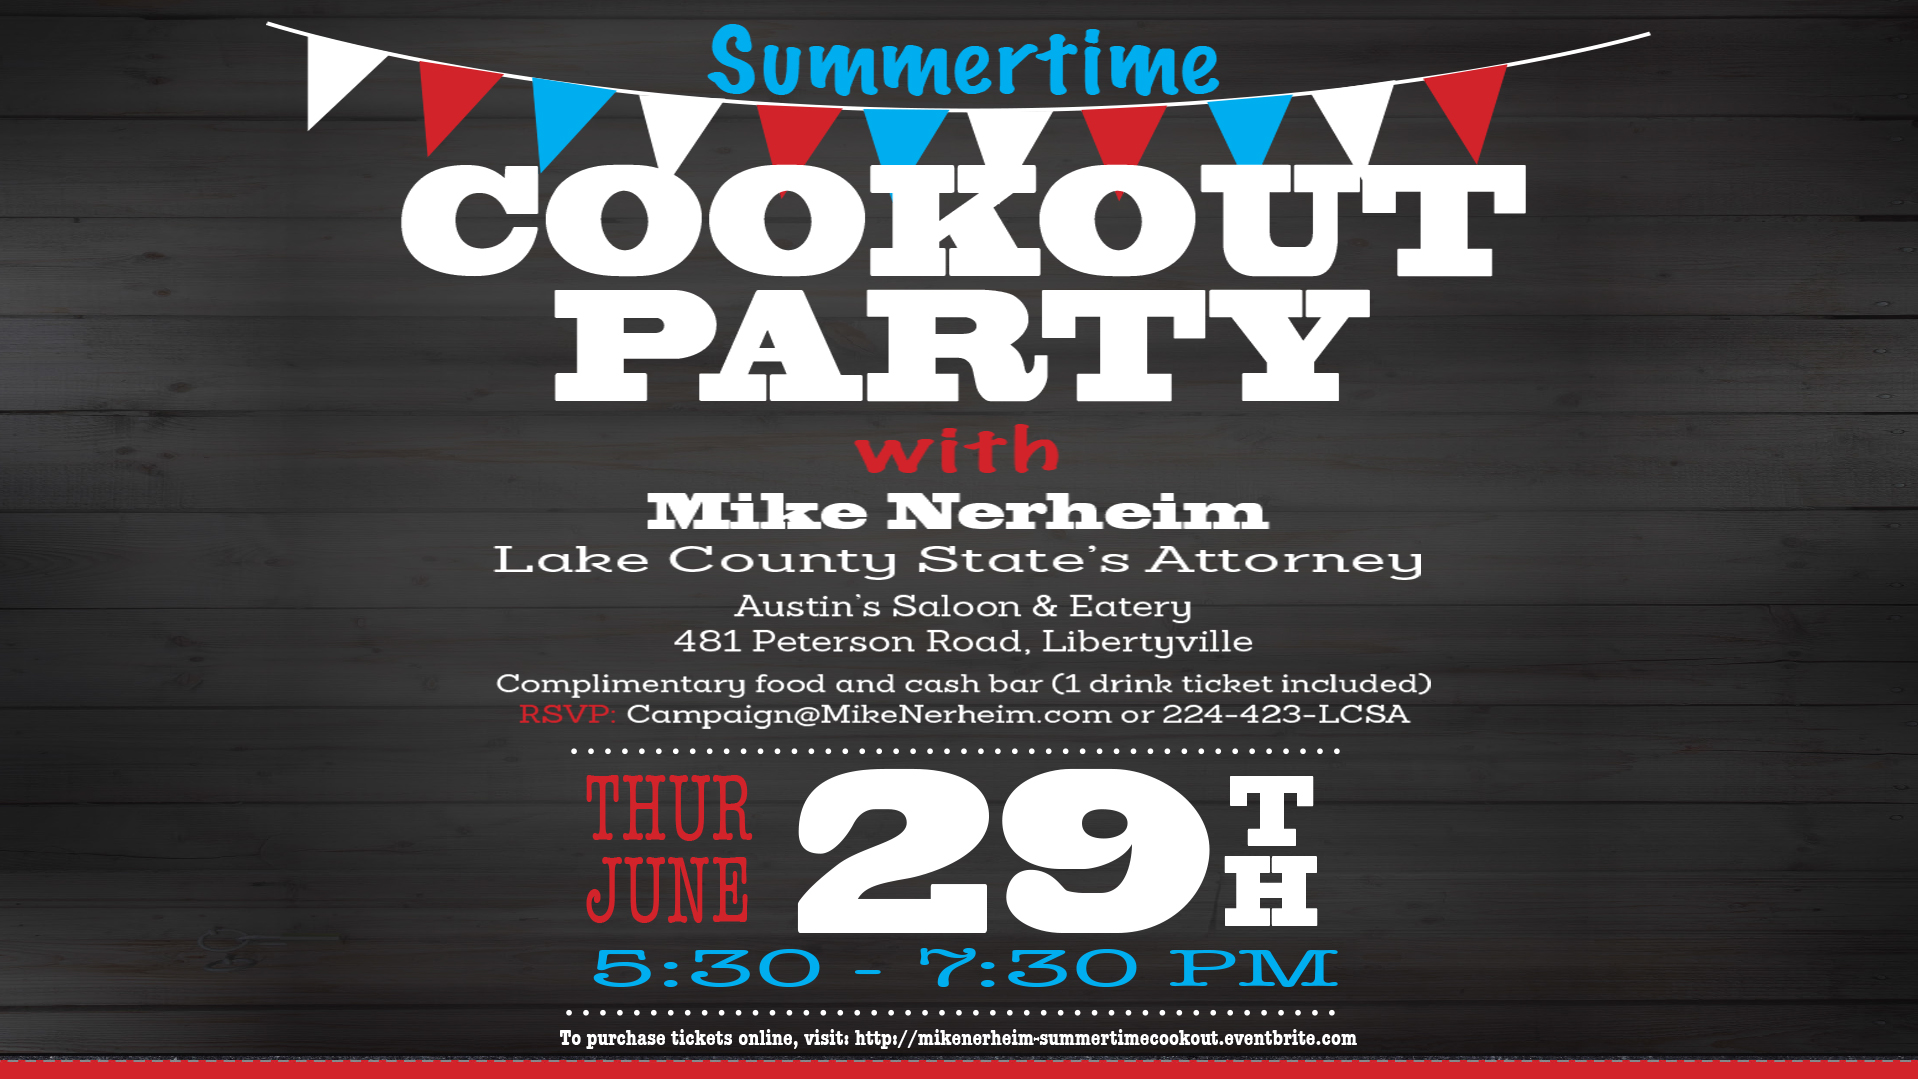 Summertime Cookout Party